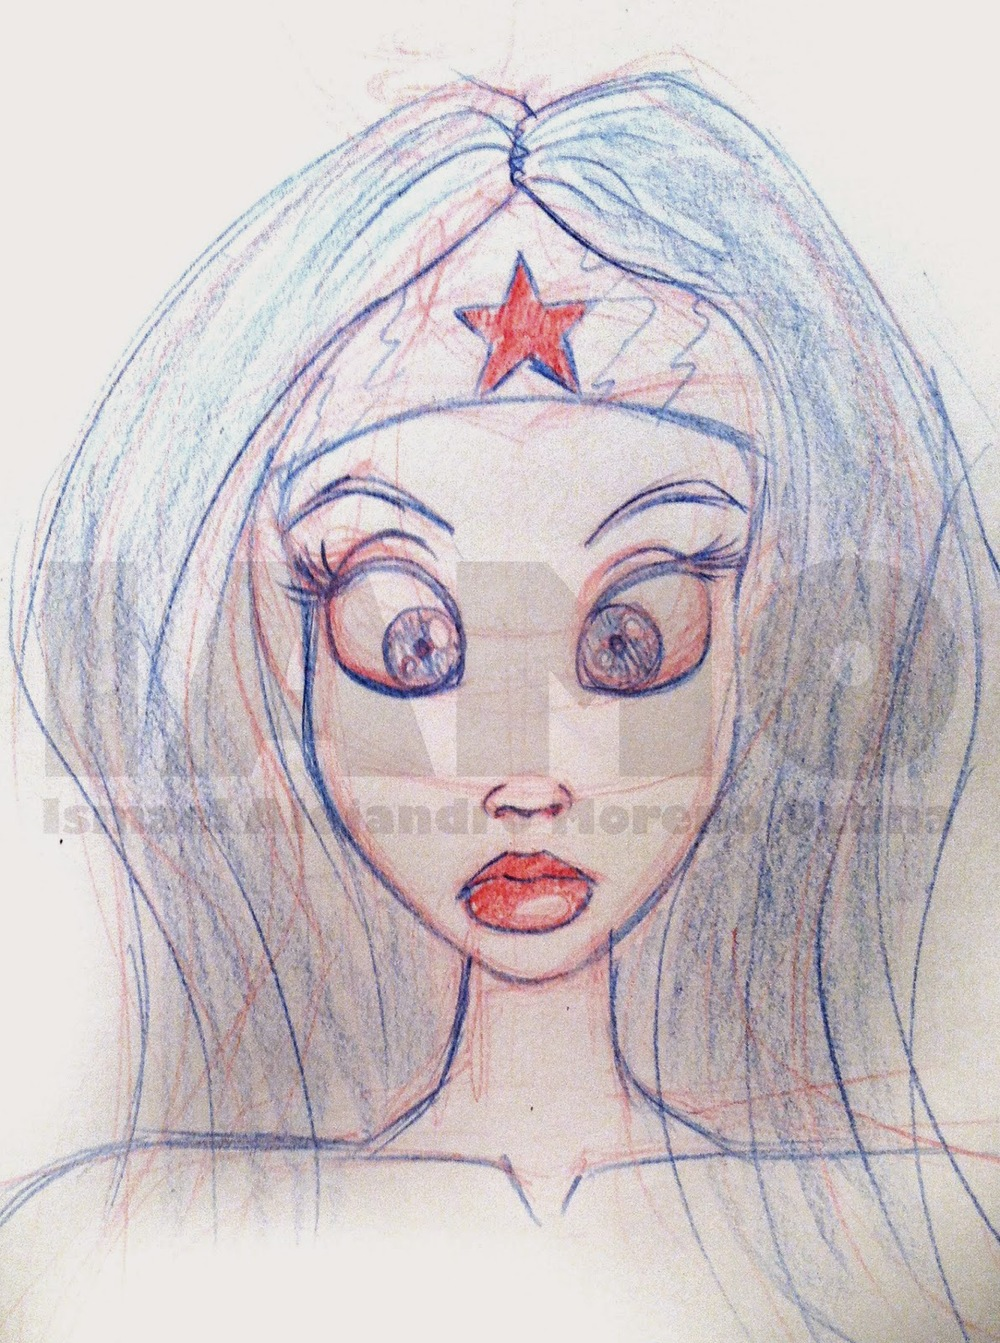 iamo-wonder-woman-selfie-sketch.jpg